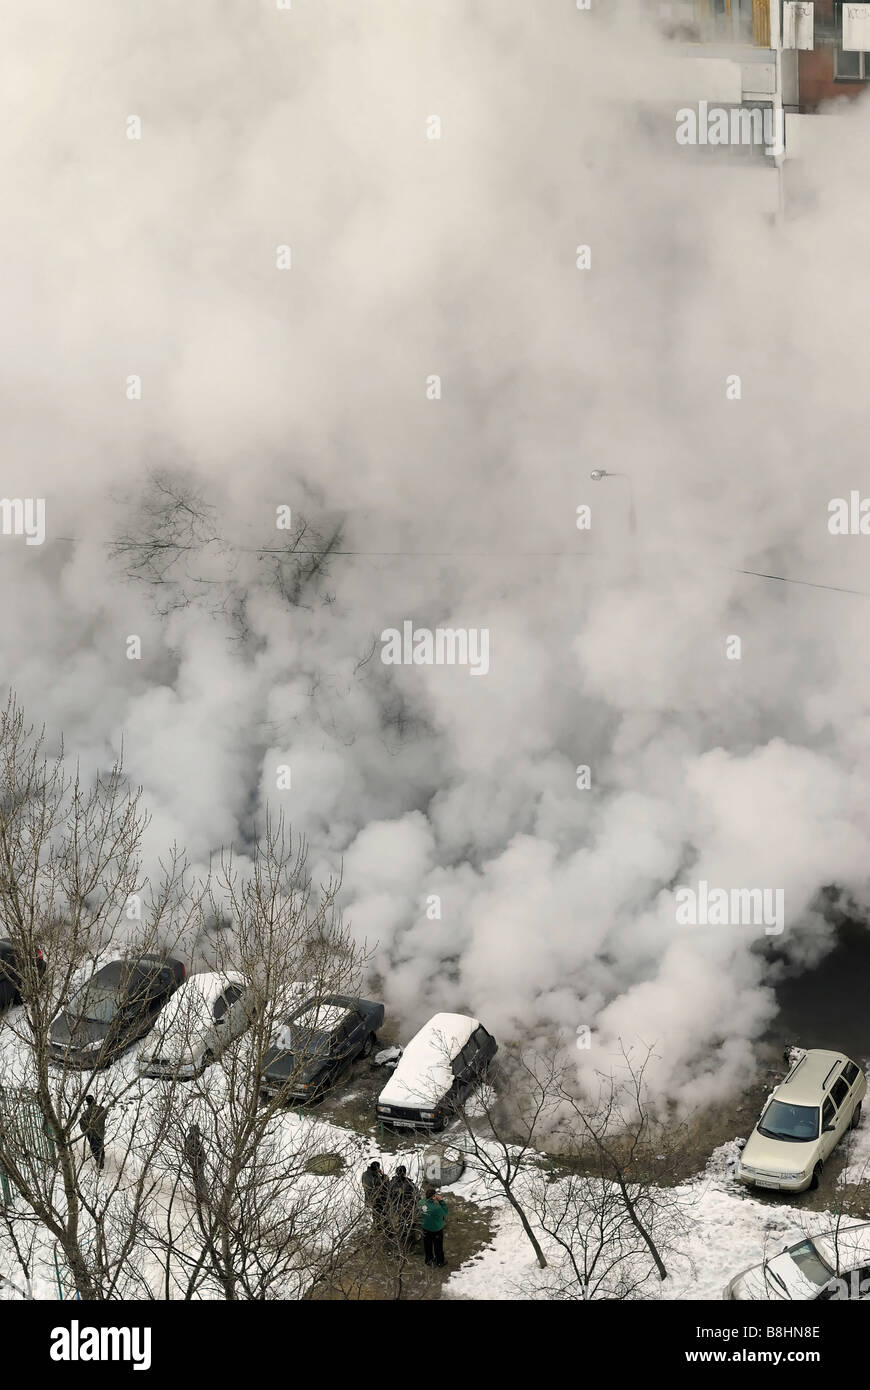 Technogenic catastrophe Rupture of central heating pipeline - Stock Image